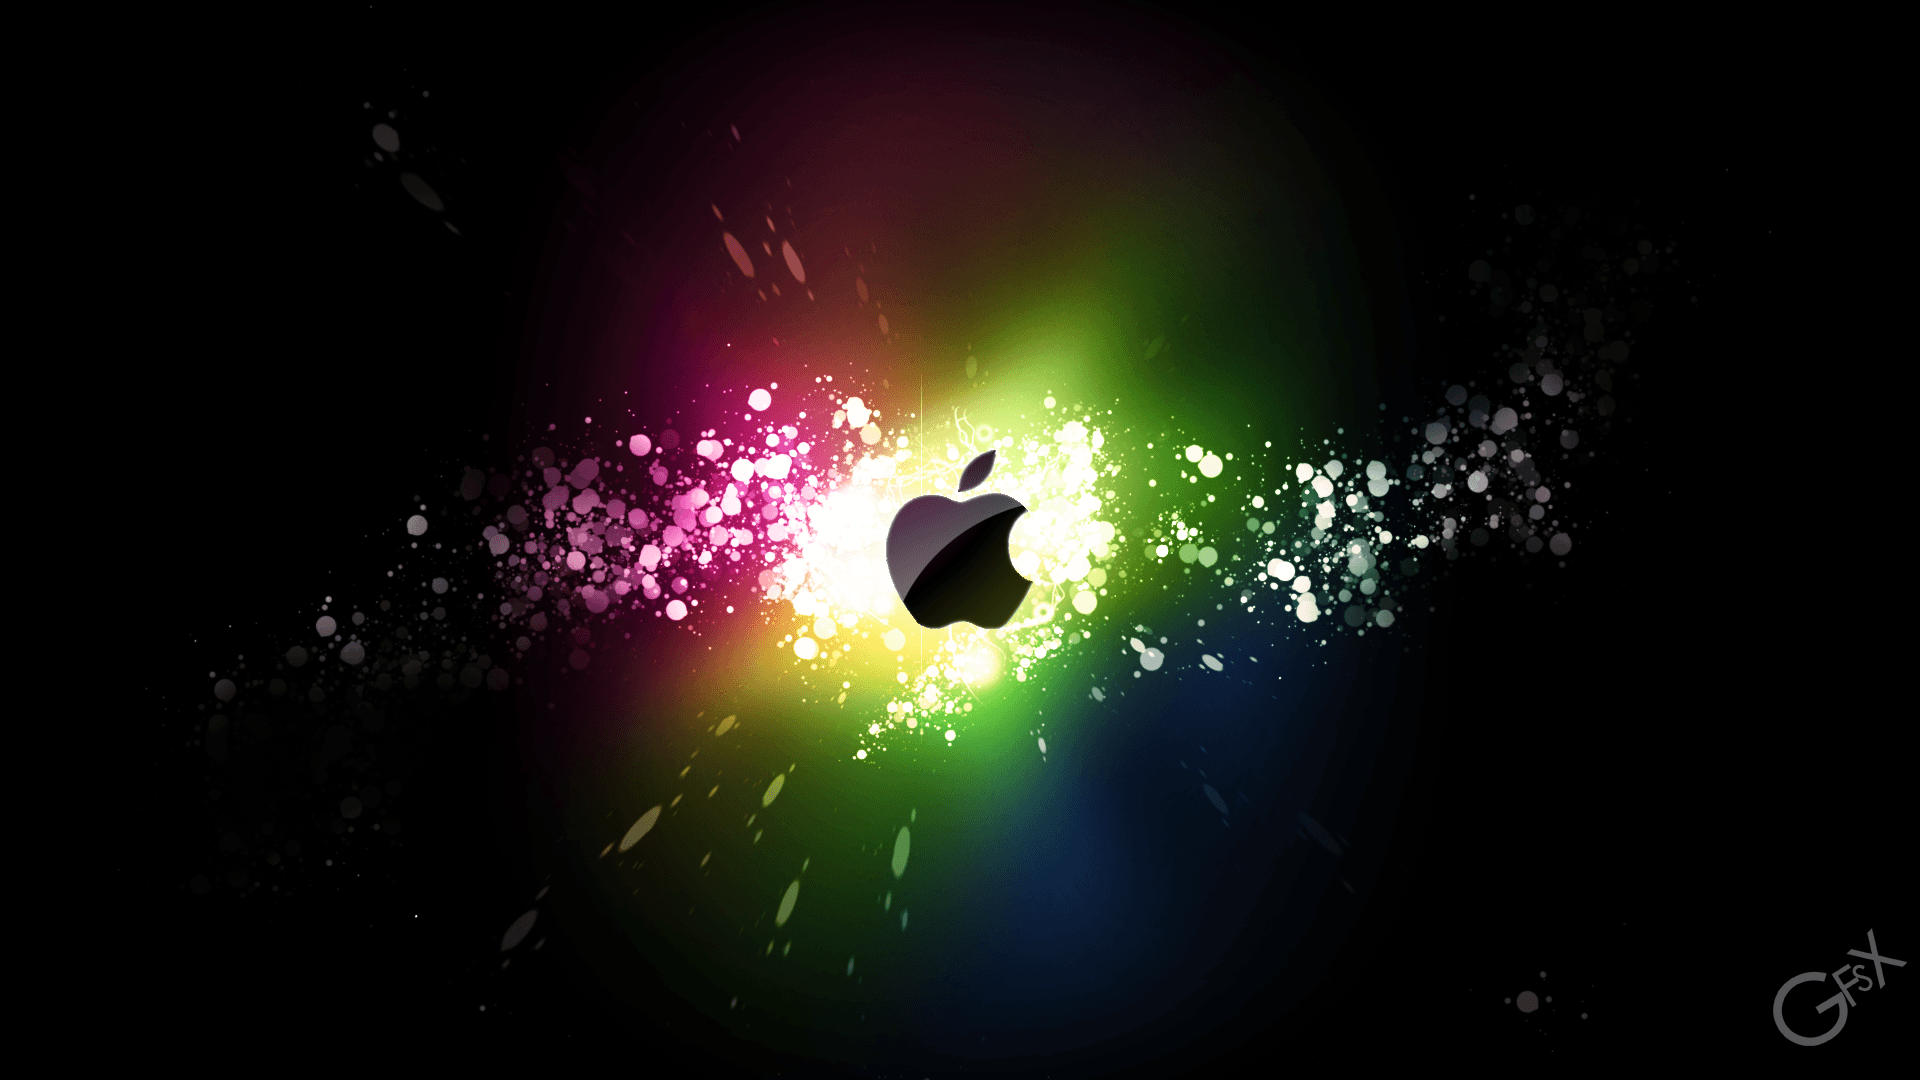 Apple Backgrounds For Mac - Wallpaper Cave